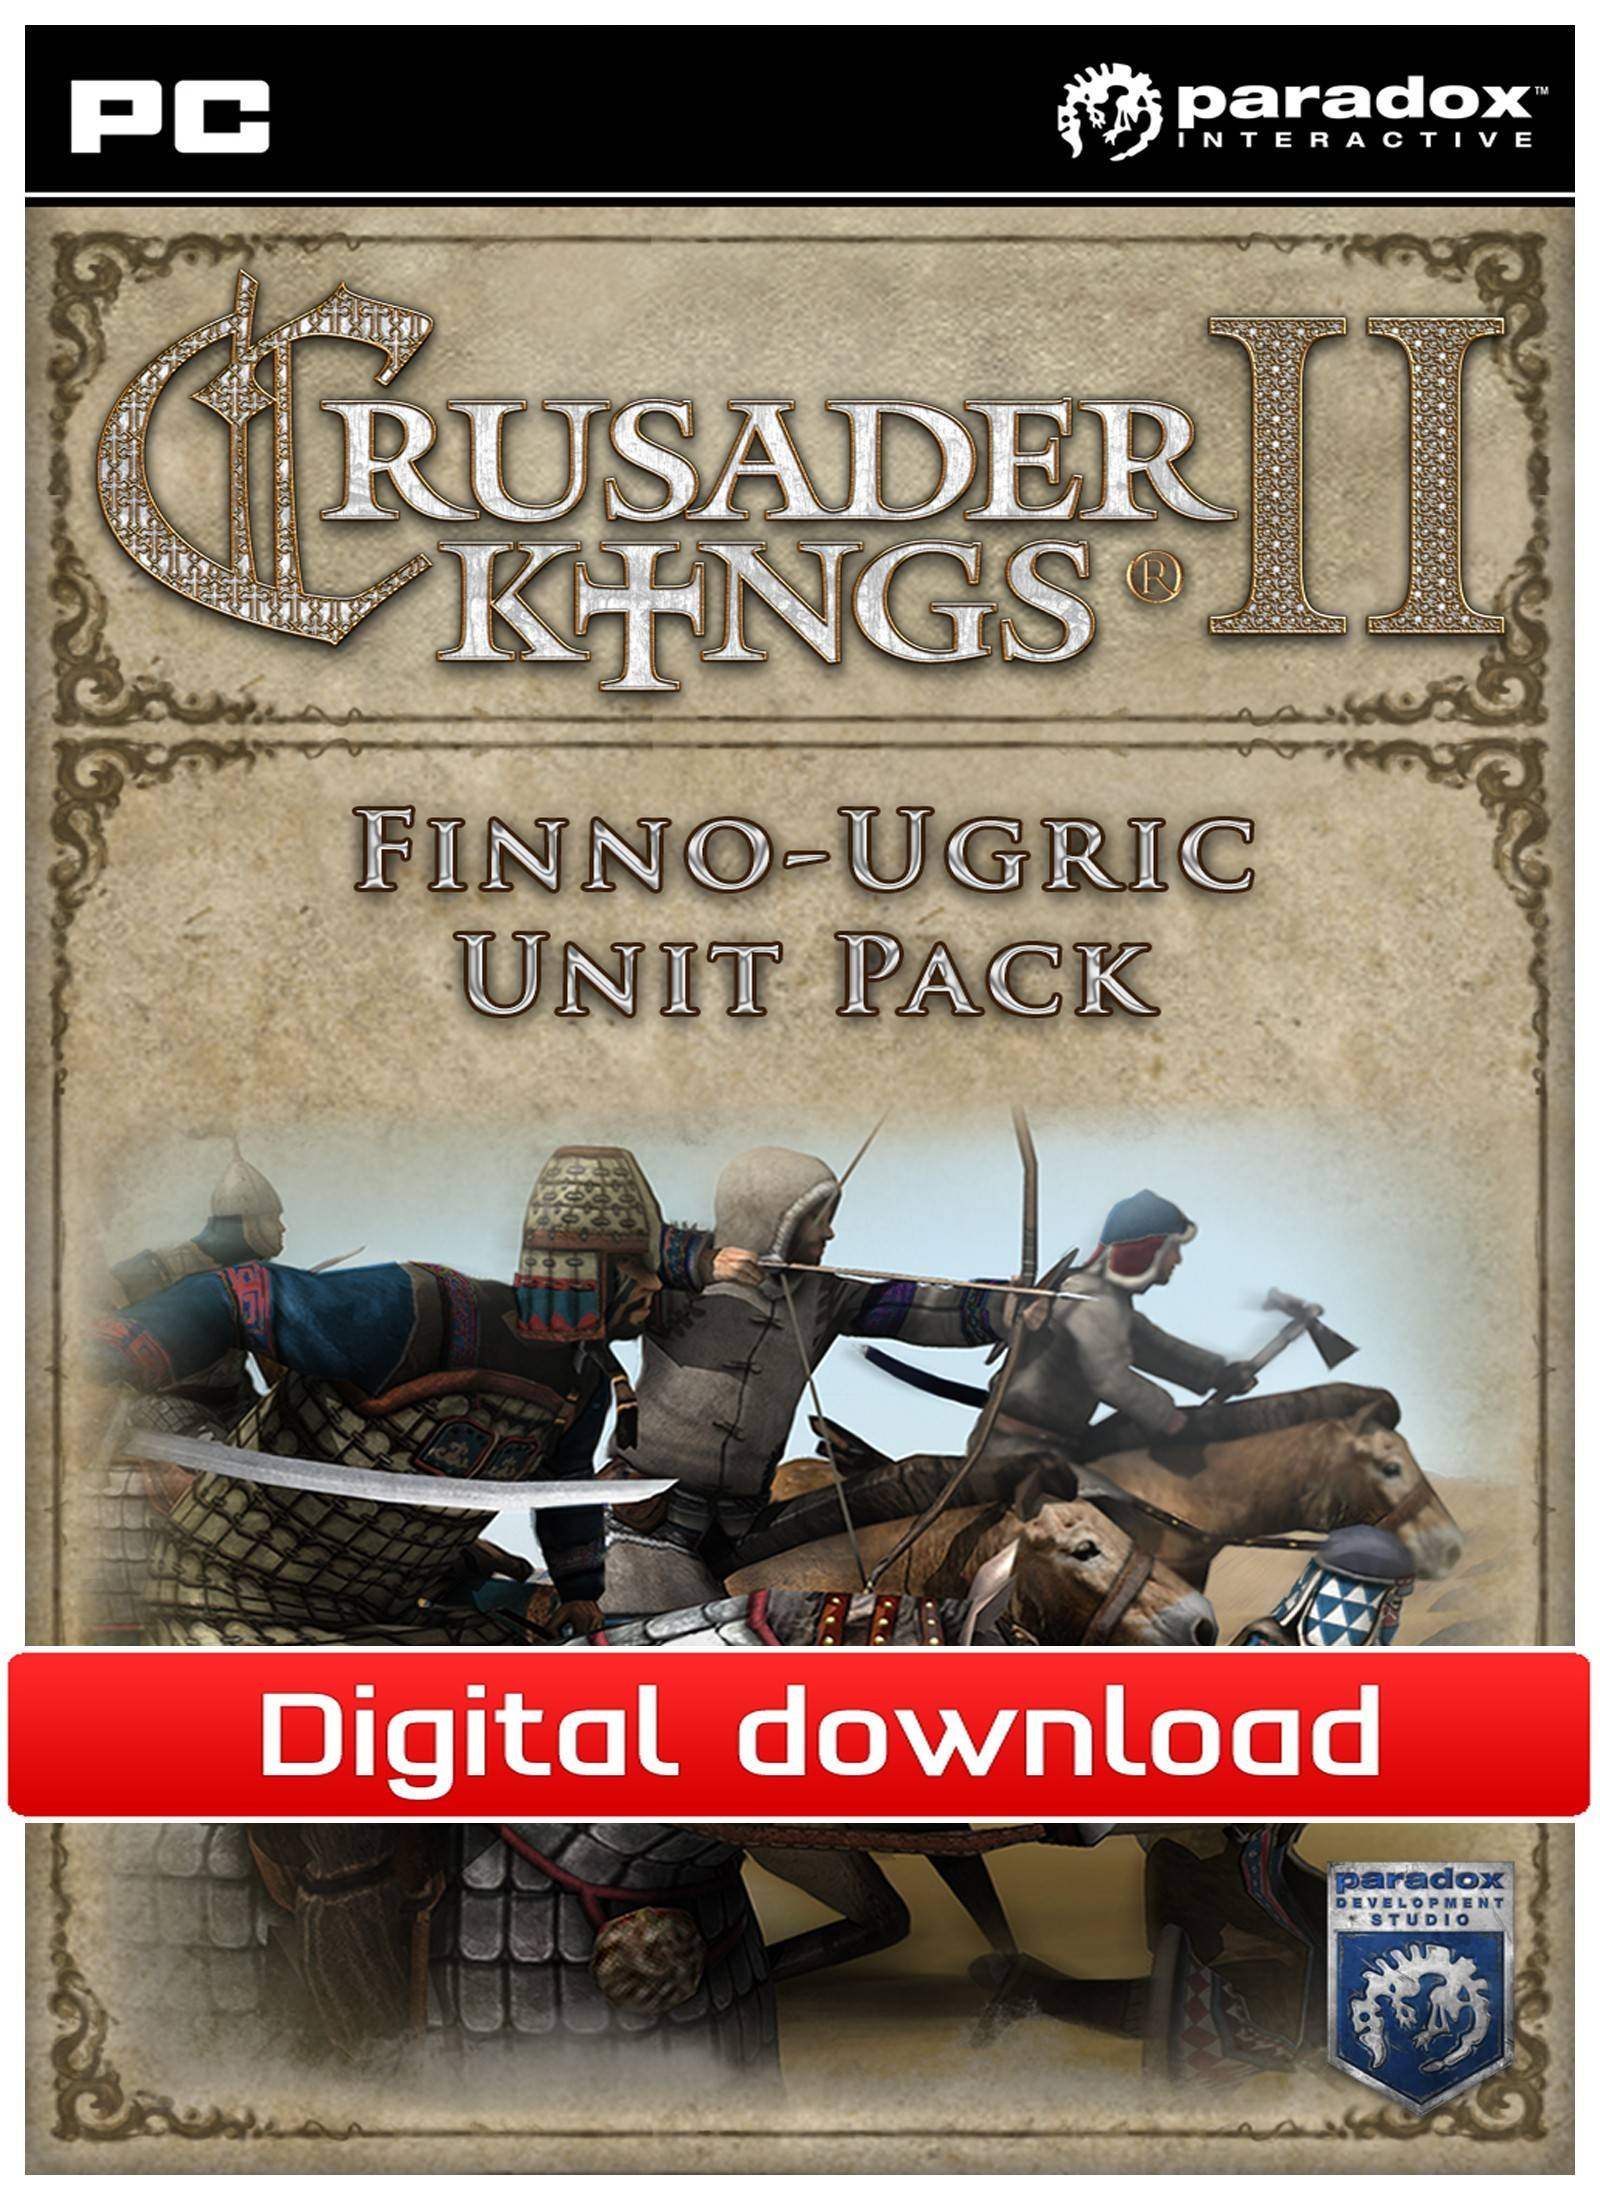 Electronic Arts Crusader Kings II: Finno-Ugric Unit Pack DLC (Downl)